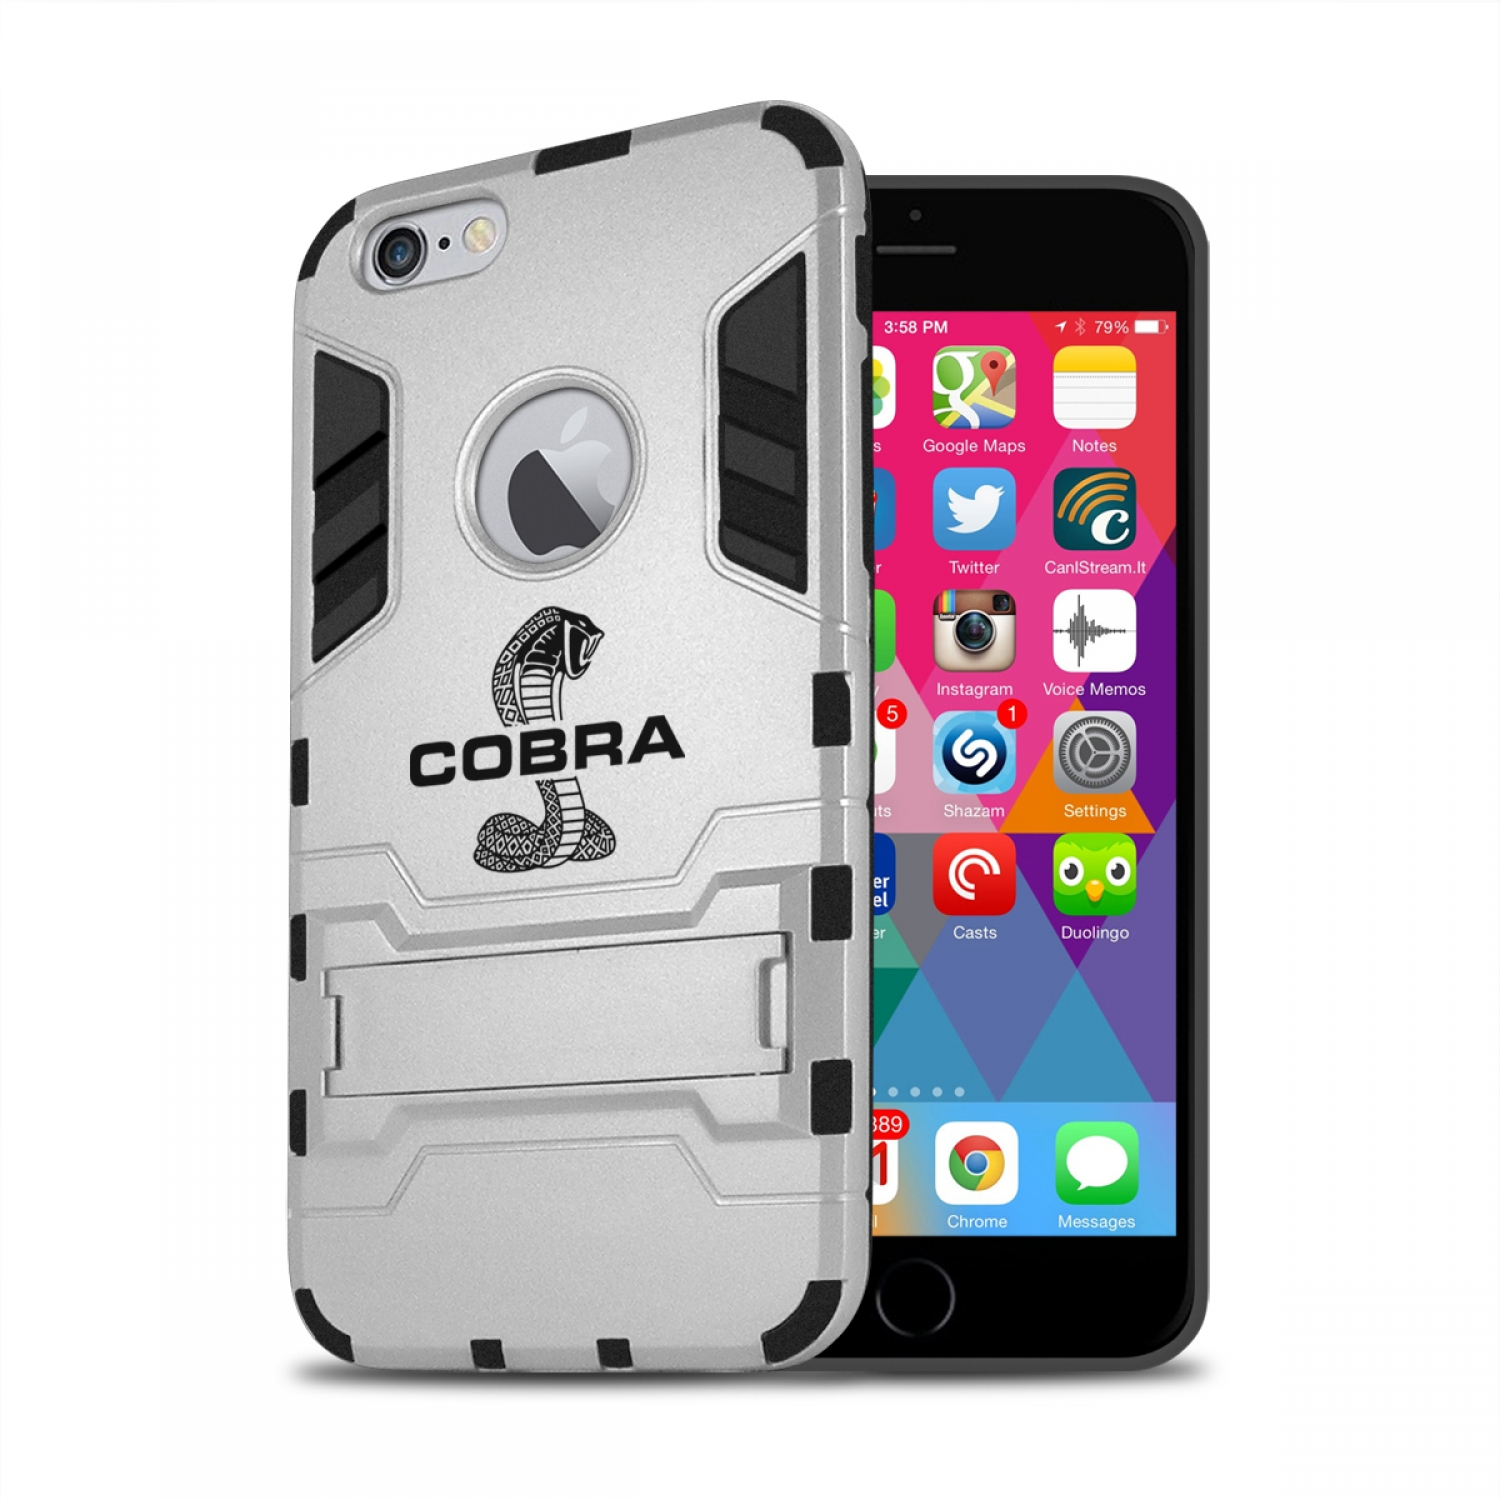 Ford Mustang Cobra iPhone 6 6s Shockproof TPU ABS Hybrid Silver Phone Case